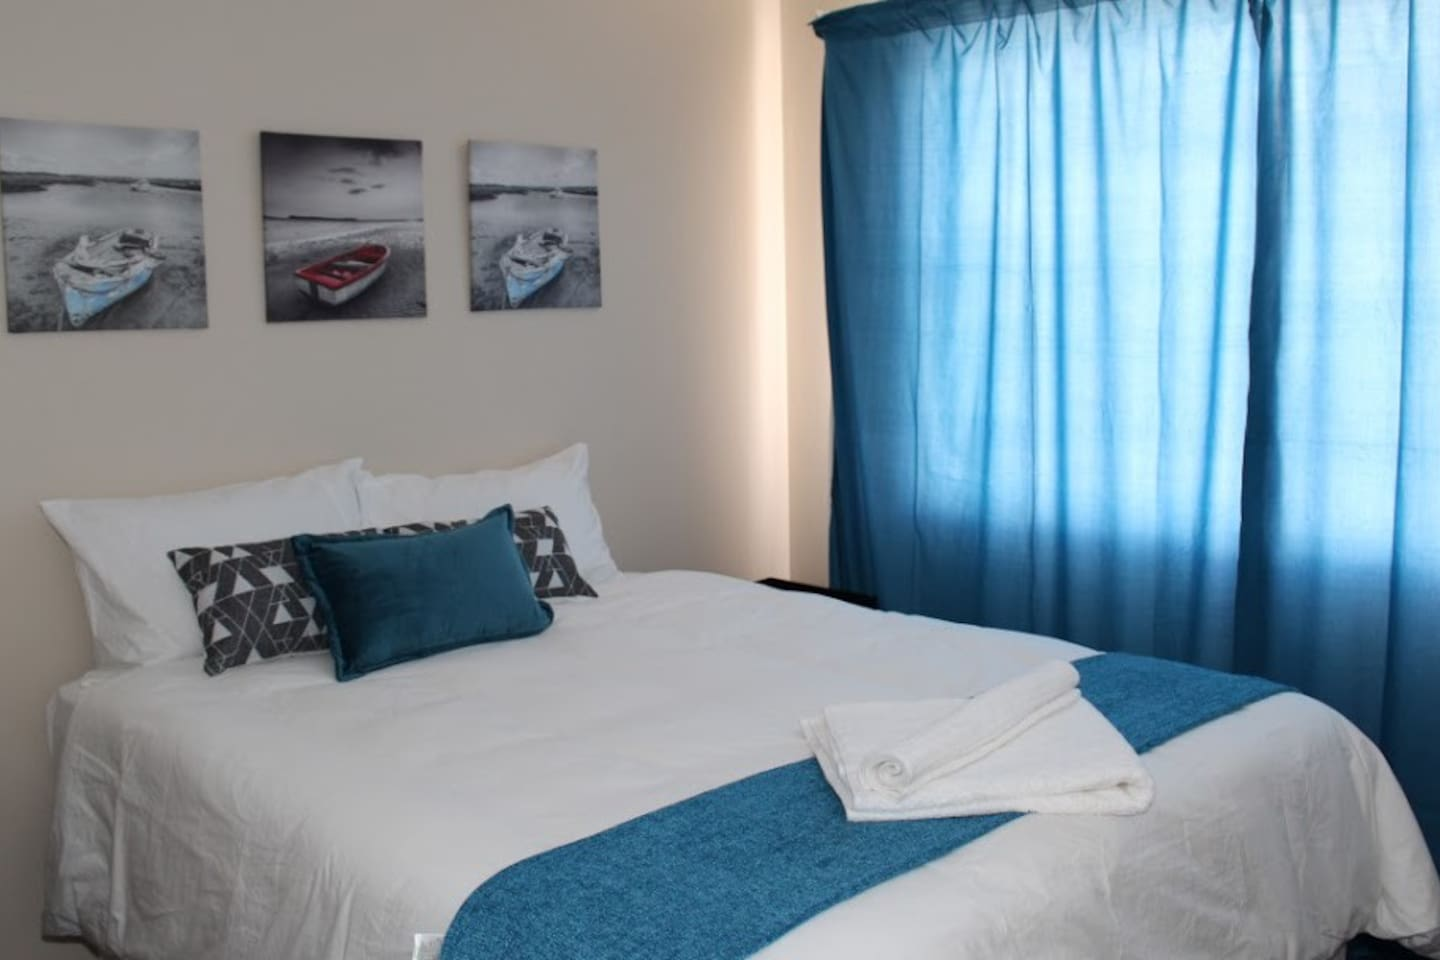 The Blue room with a private bathroom, can accommodate up to 4 guests.